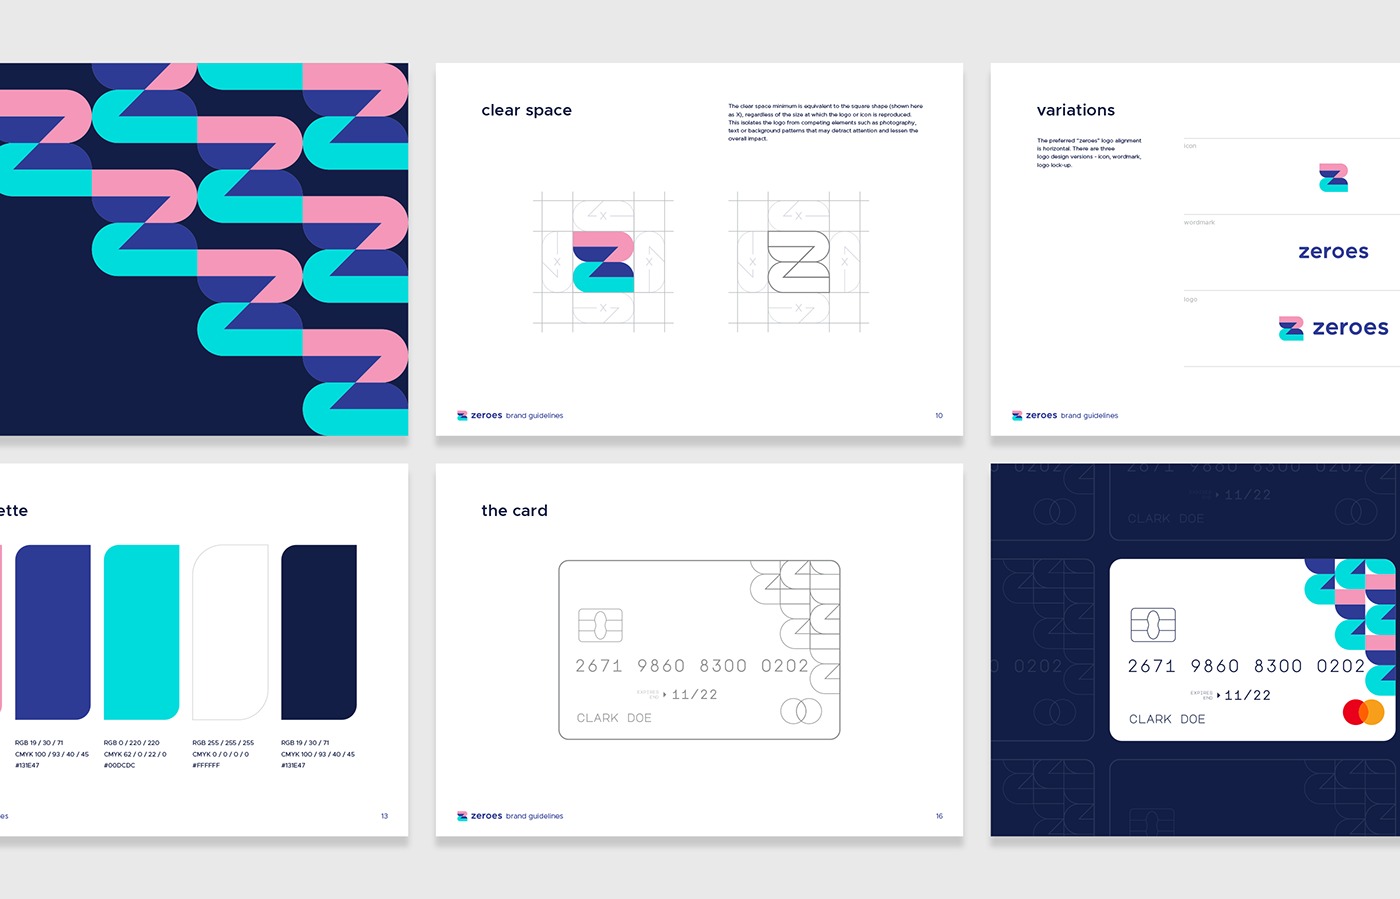 mobile bank brand usage guidelines showing how the brand is made